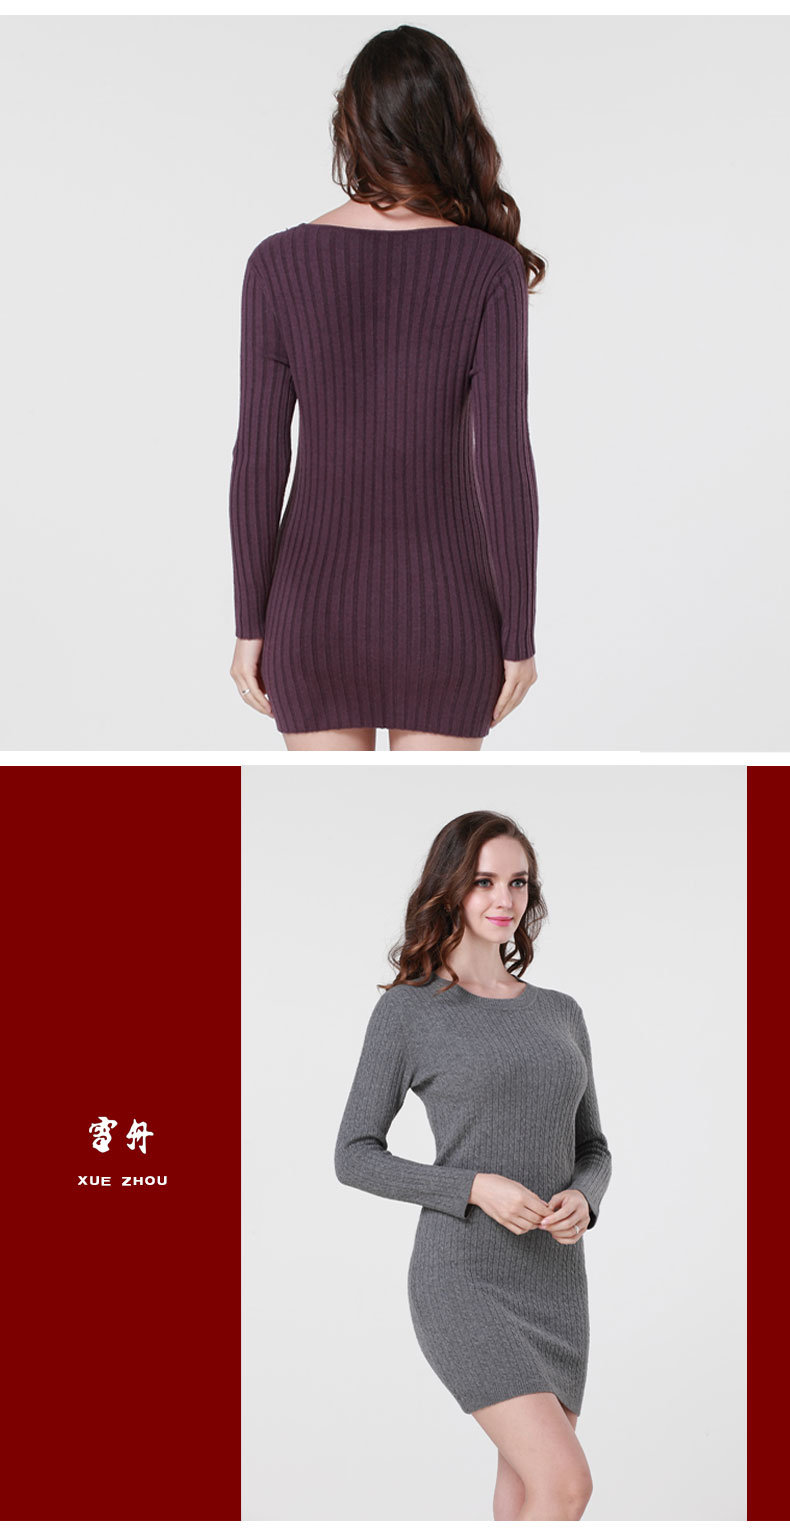 Gn1527girl′s Yak Wool/Cashmere V Neck Long Sleeve Dress/Sweater/Knitwear/Garment/Clothes